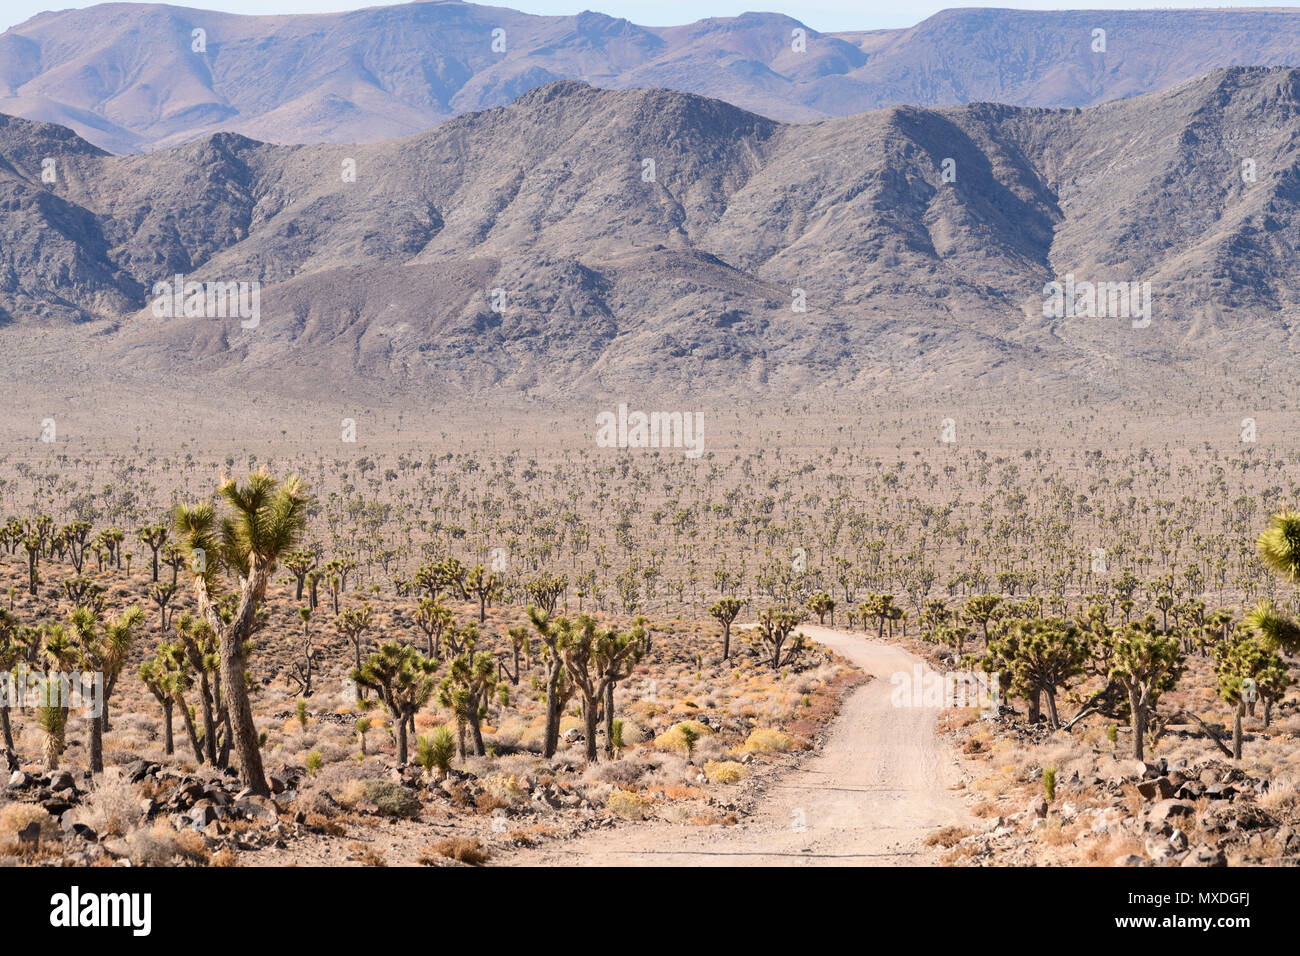 Joshua trees line the 50 miles of dirt road into Saline Valley in Death Valley National Park, California, USA. - Stock Image